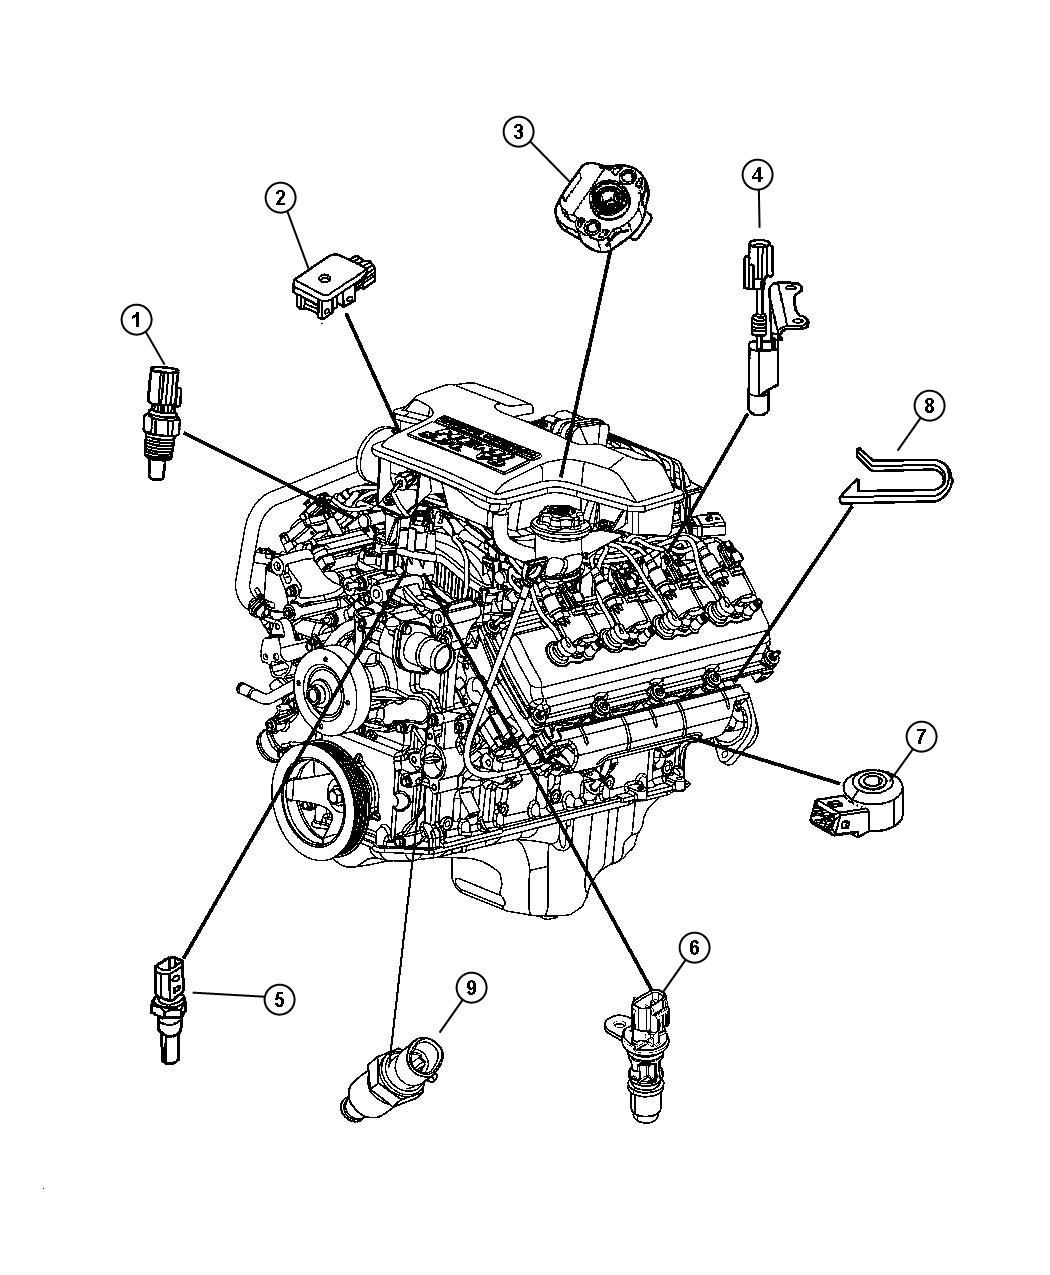 5 7l Chevy Engine Parts Diagram 5 Free Engine Image For